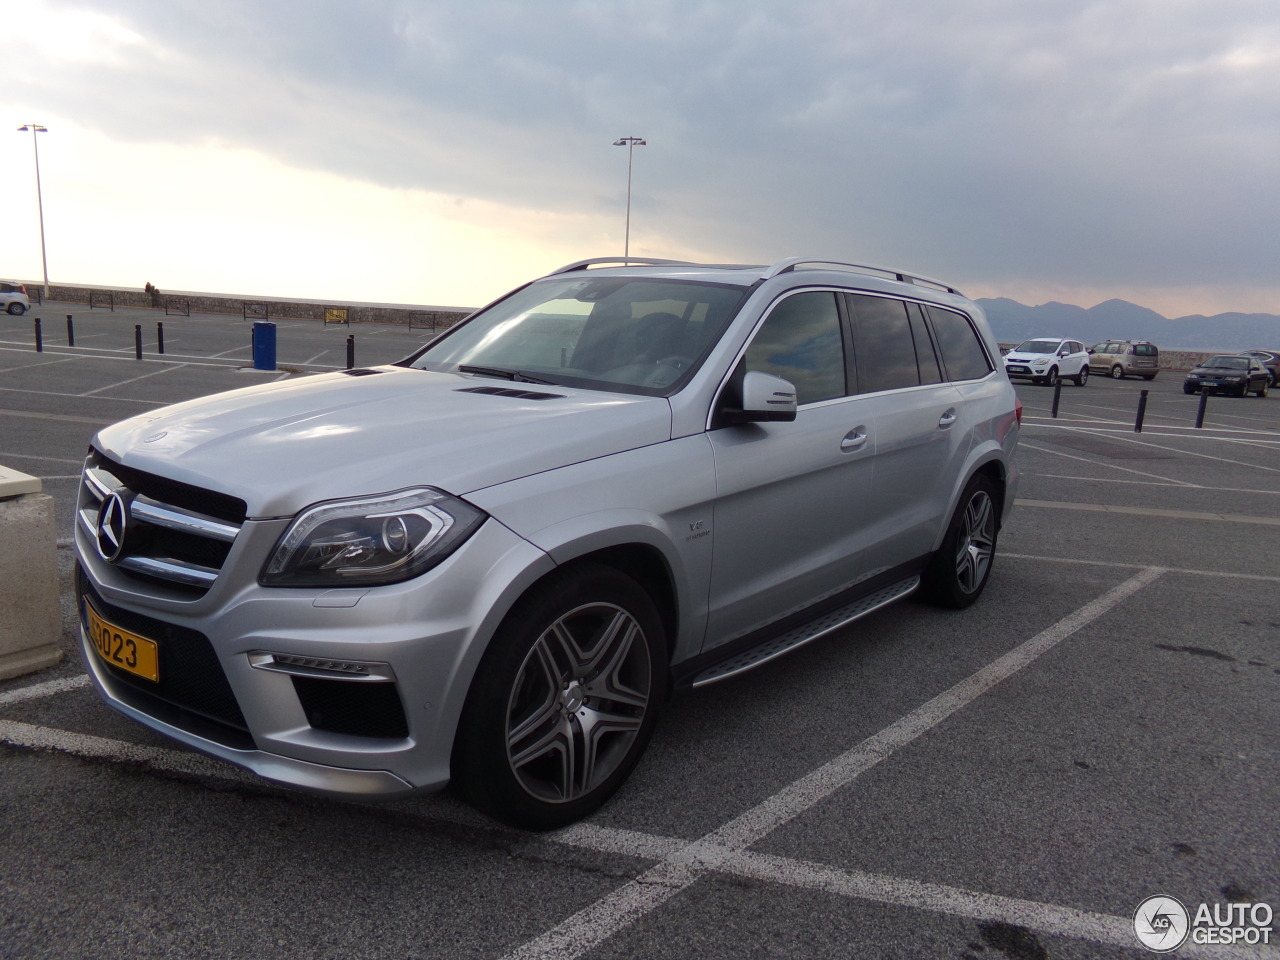 Mercedes benz gl 63 amg x166 29 january 2016 autogespot for Mercedes benz gl 63 amg